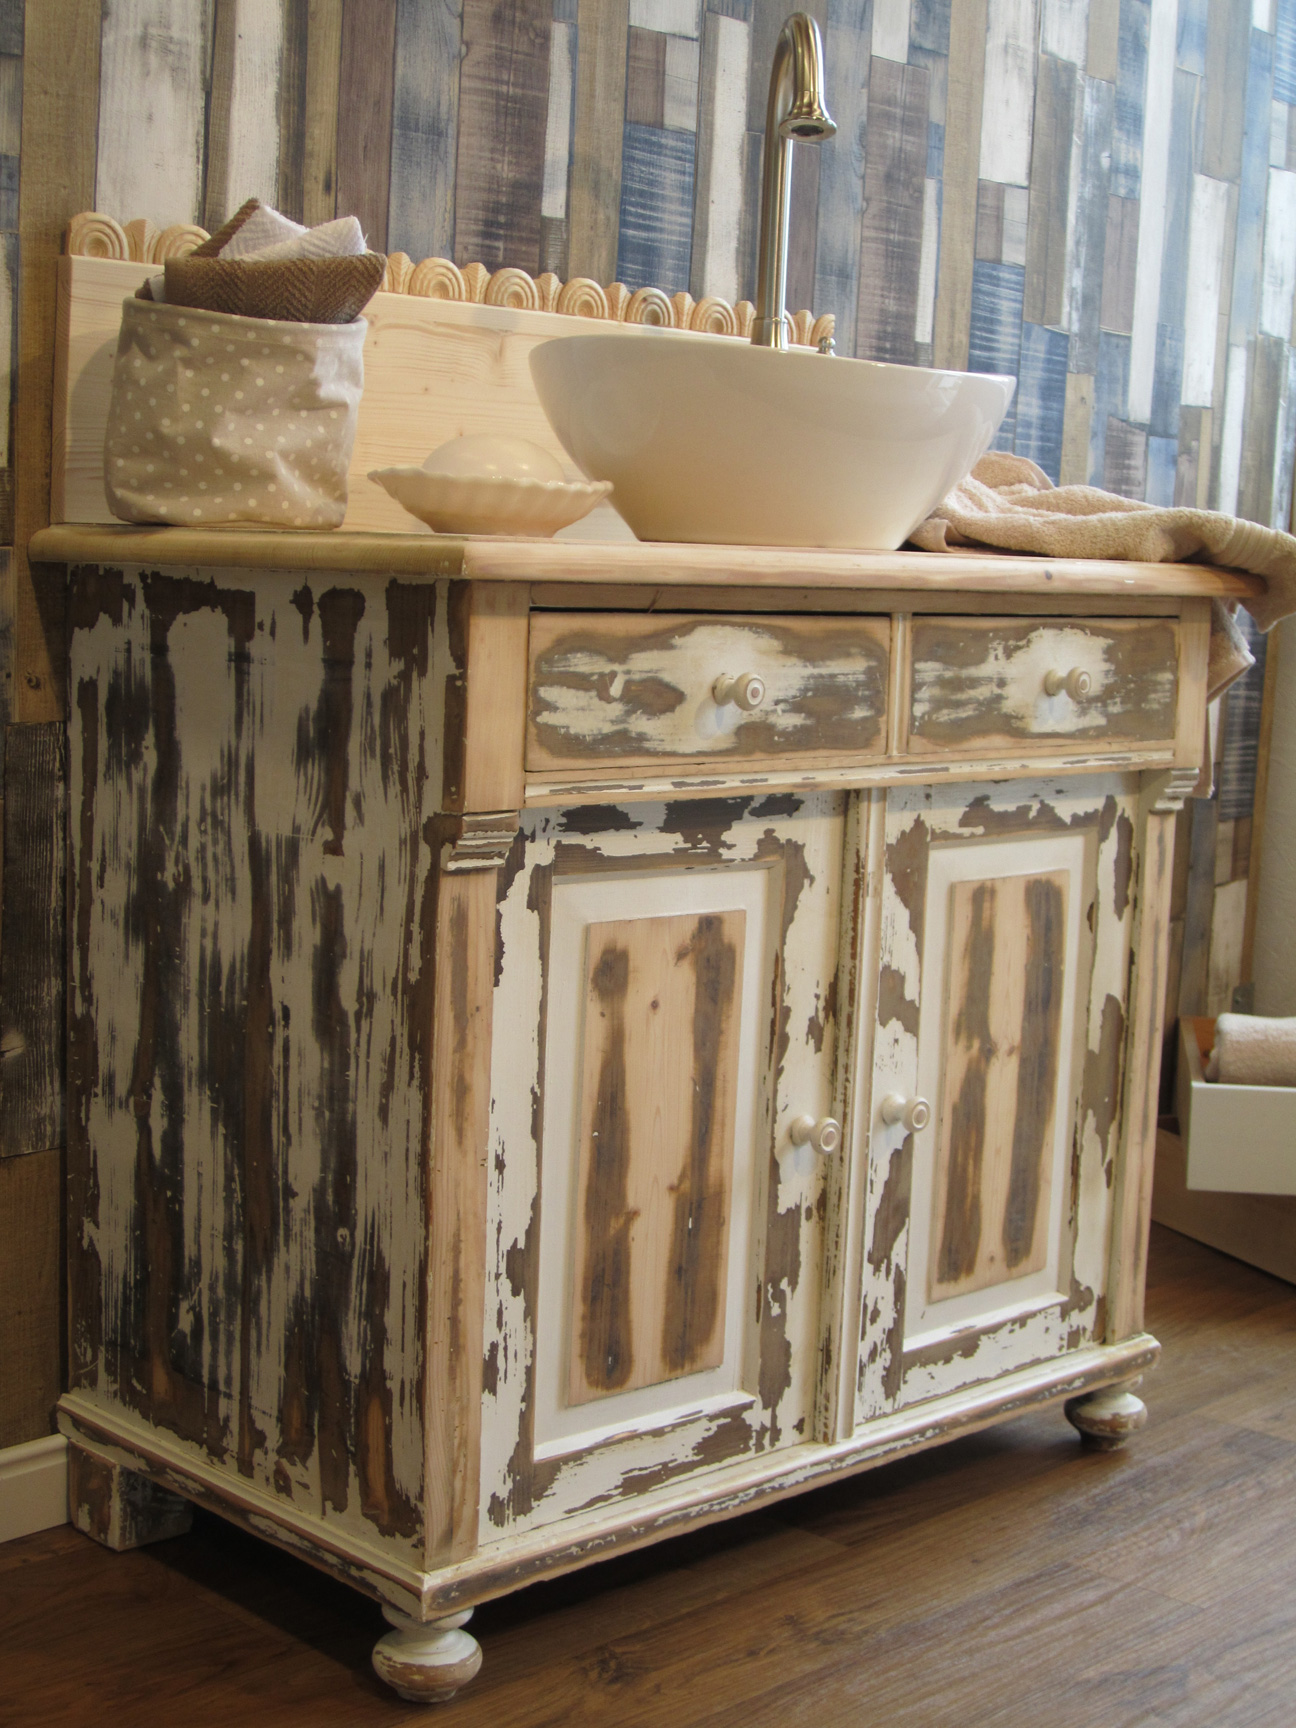 sch ner waschtisch shabby chic landhaus look mal l ssig und individuell. Black Bedroom Furniture Sets. Home Design Ideas